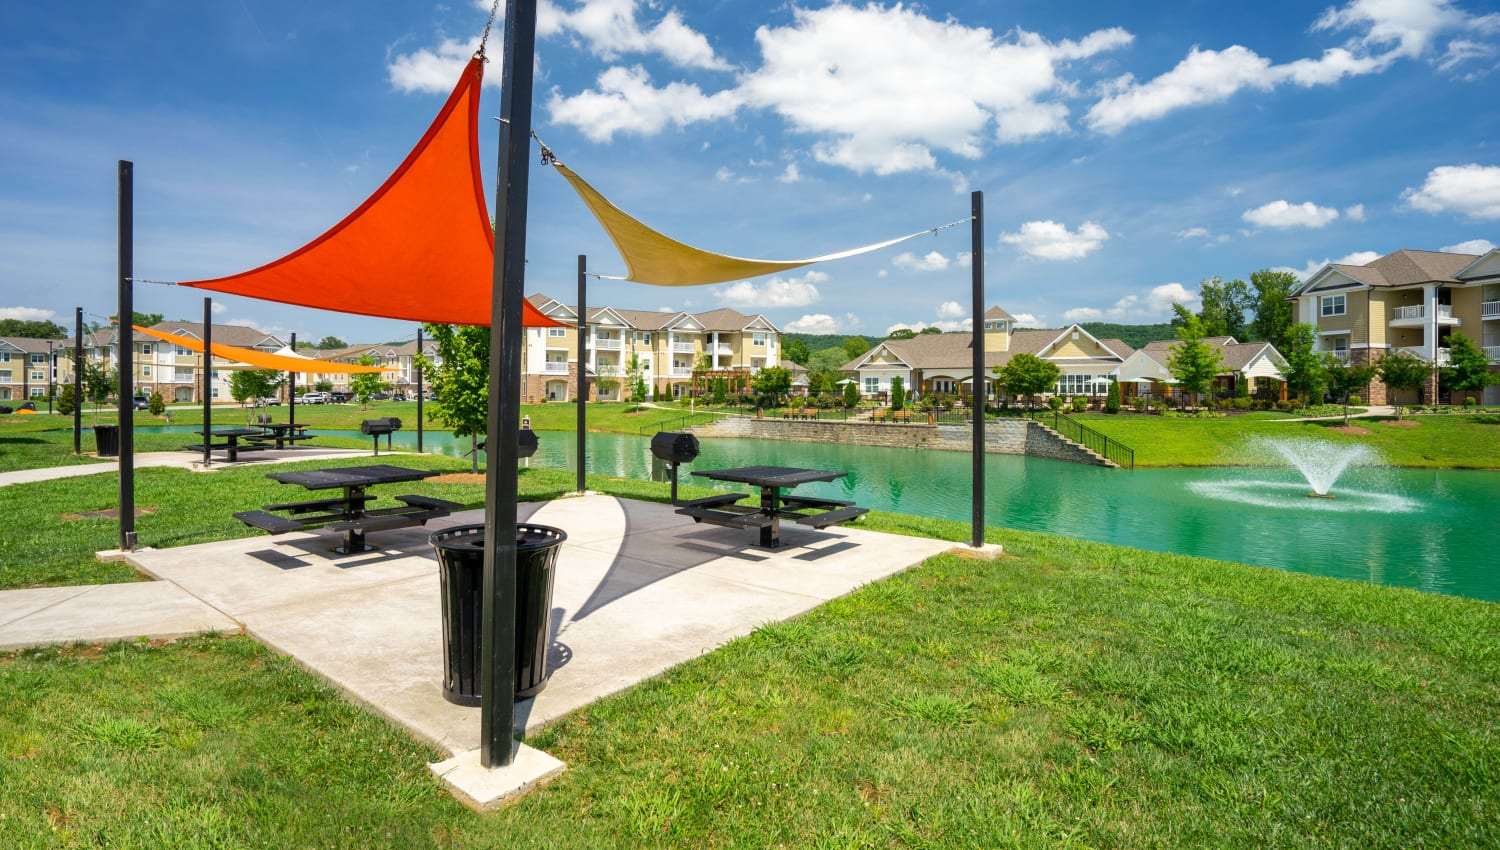 Shaded picnic area at Legends at White Oak in Ooltewah, Tennessee